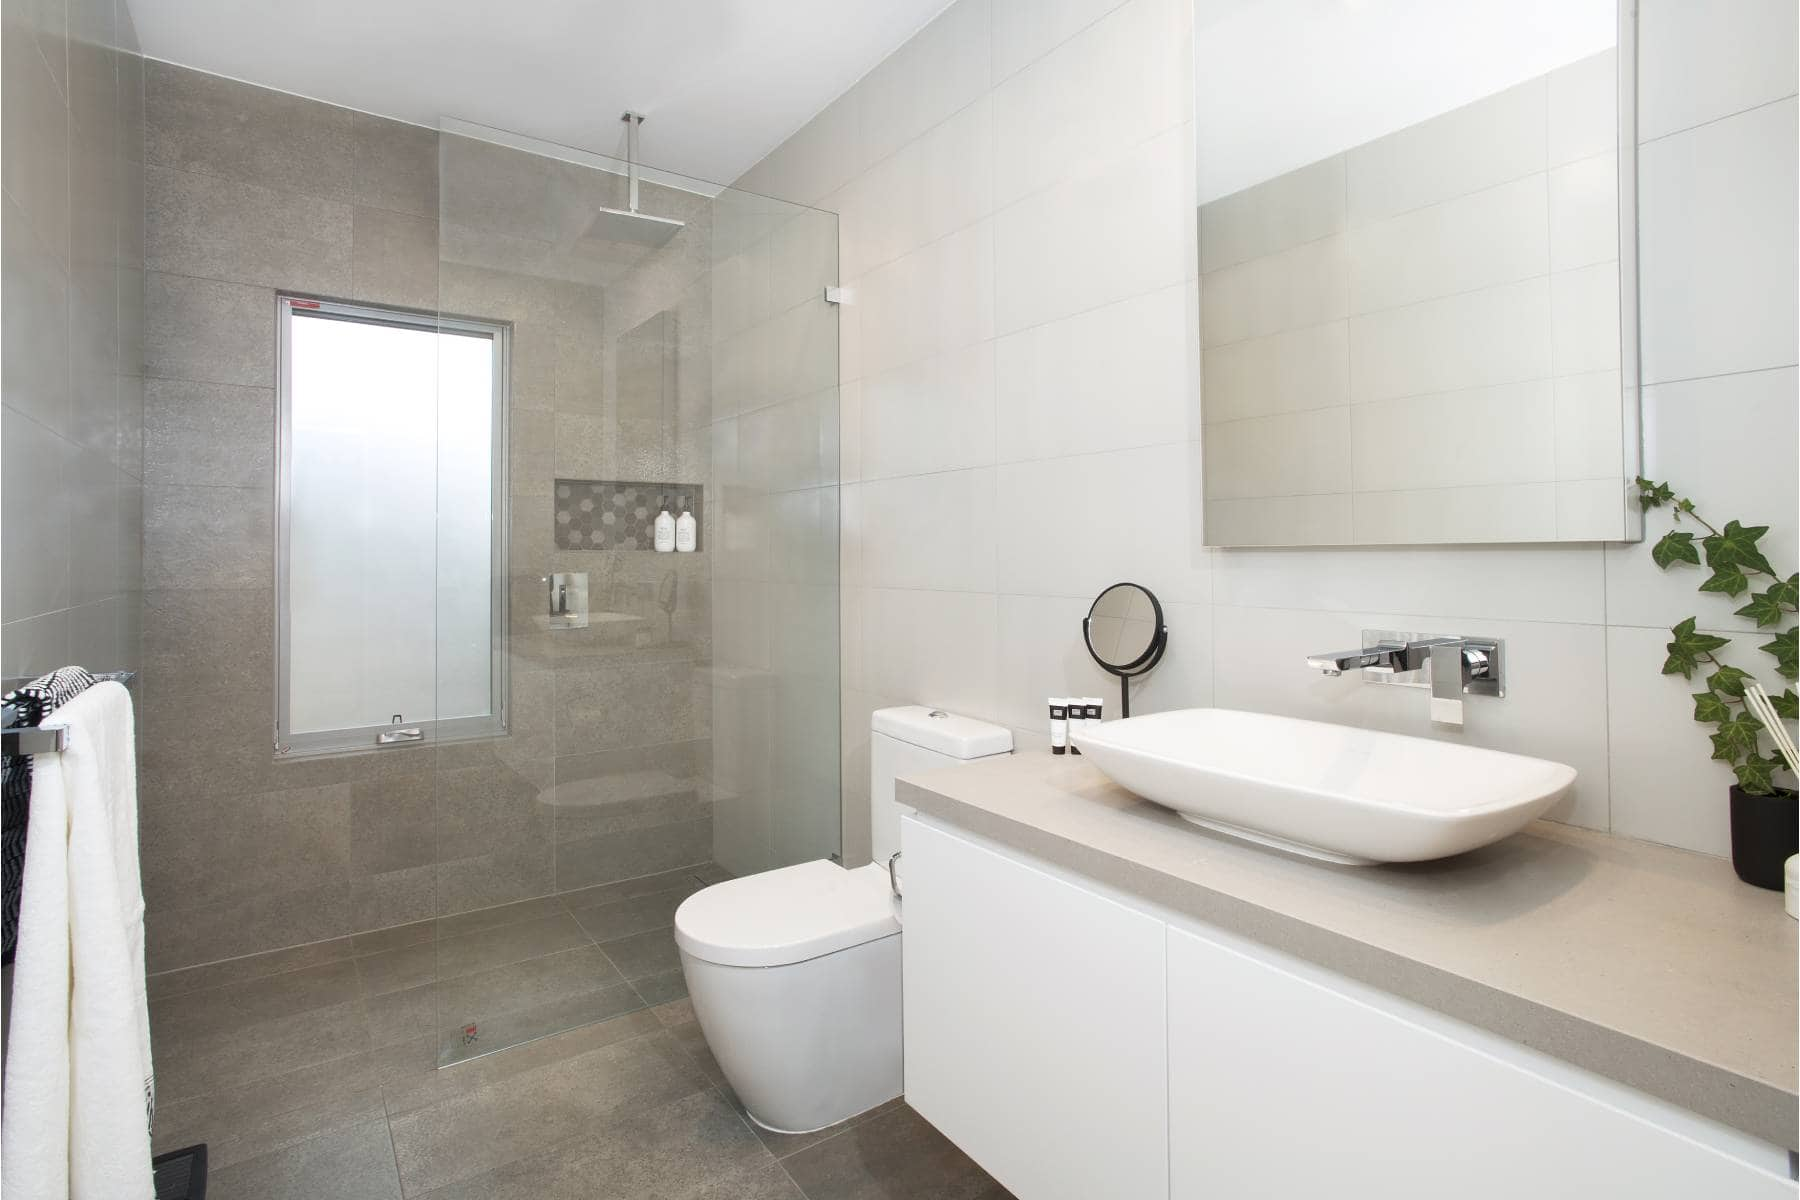 A bathroom after a destination living renovation